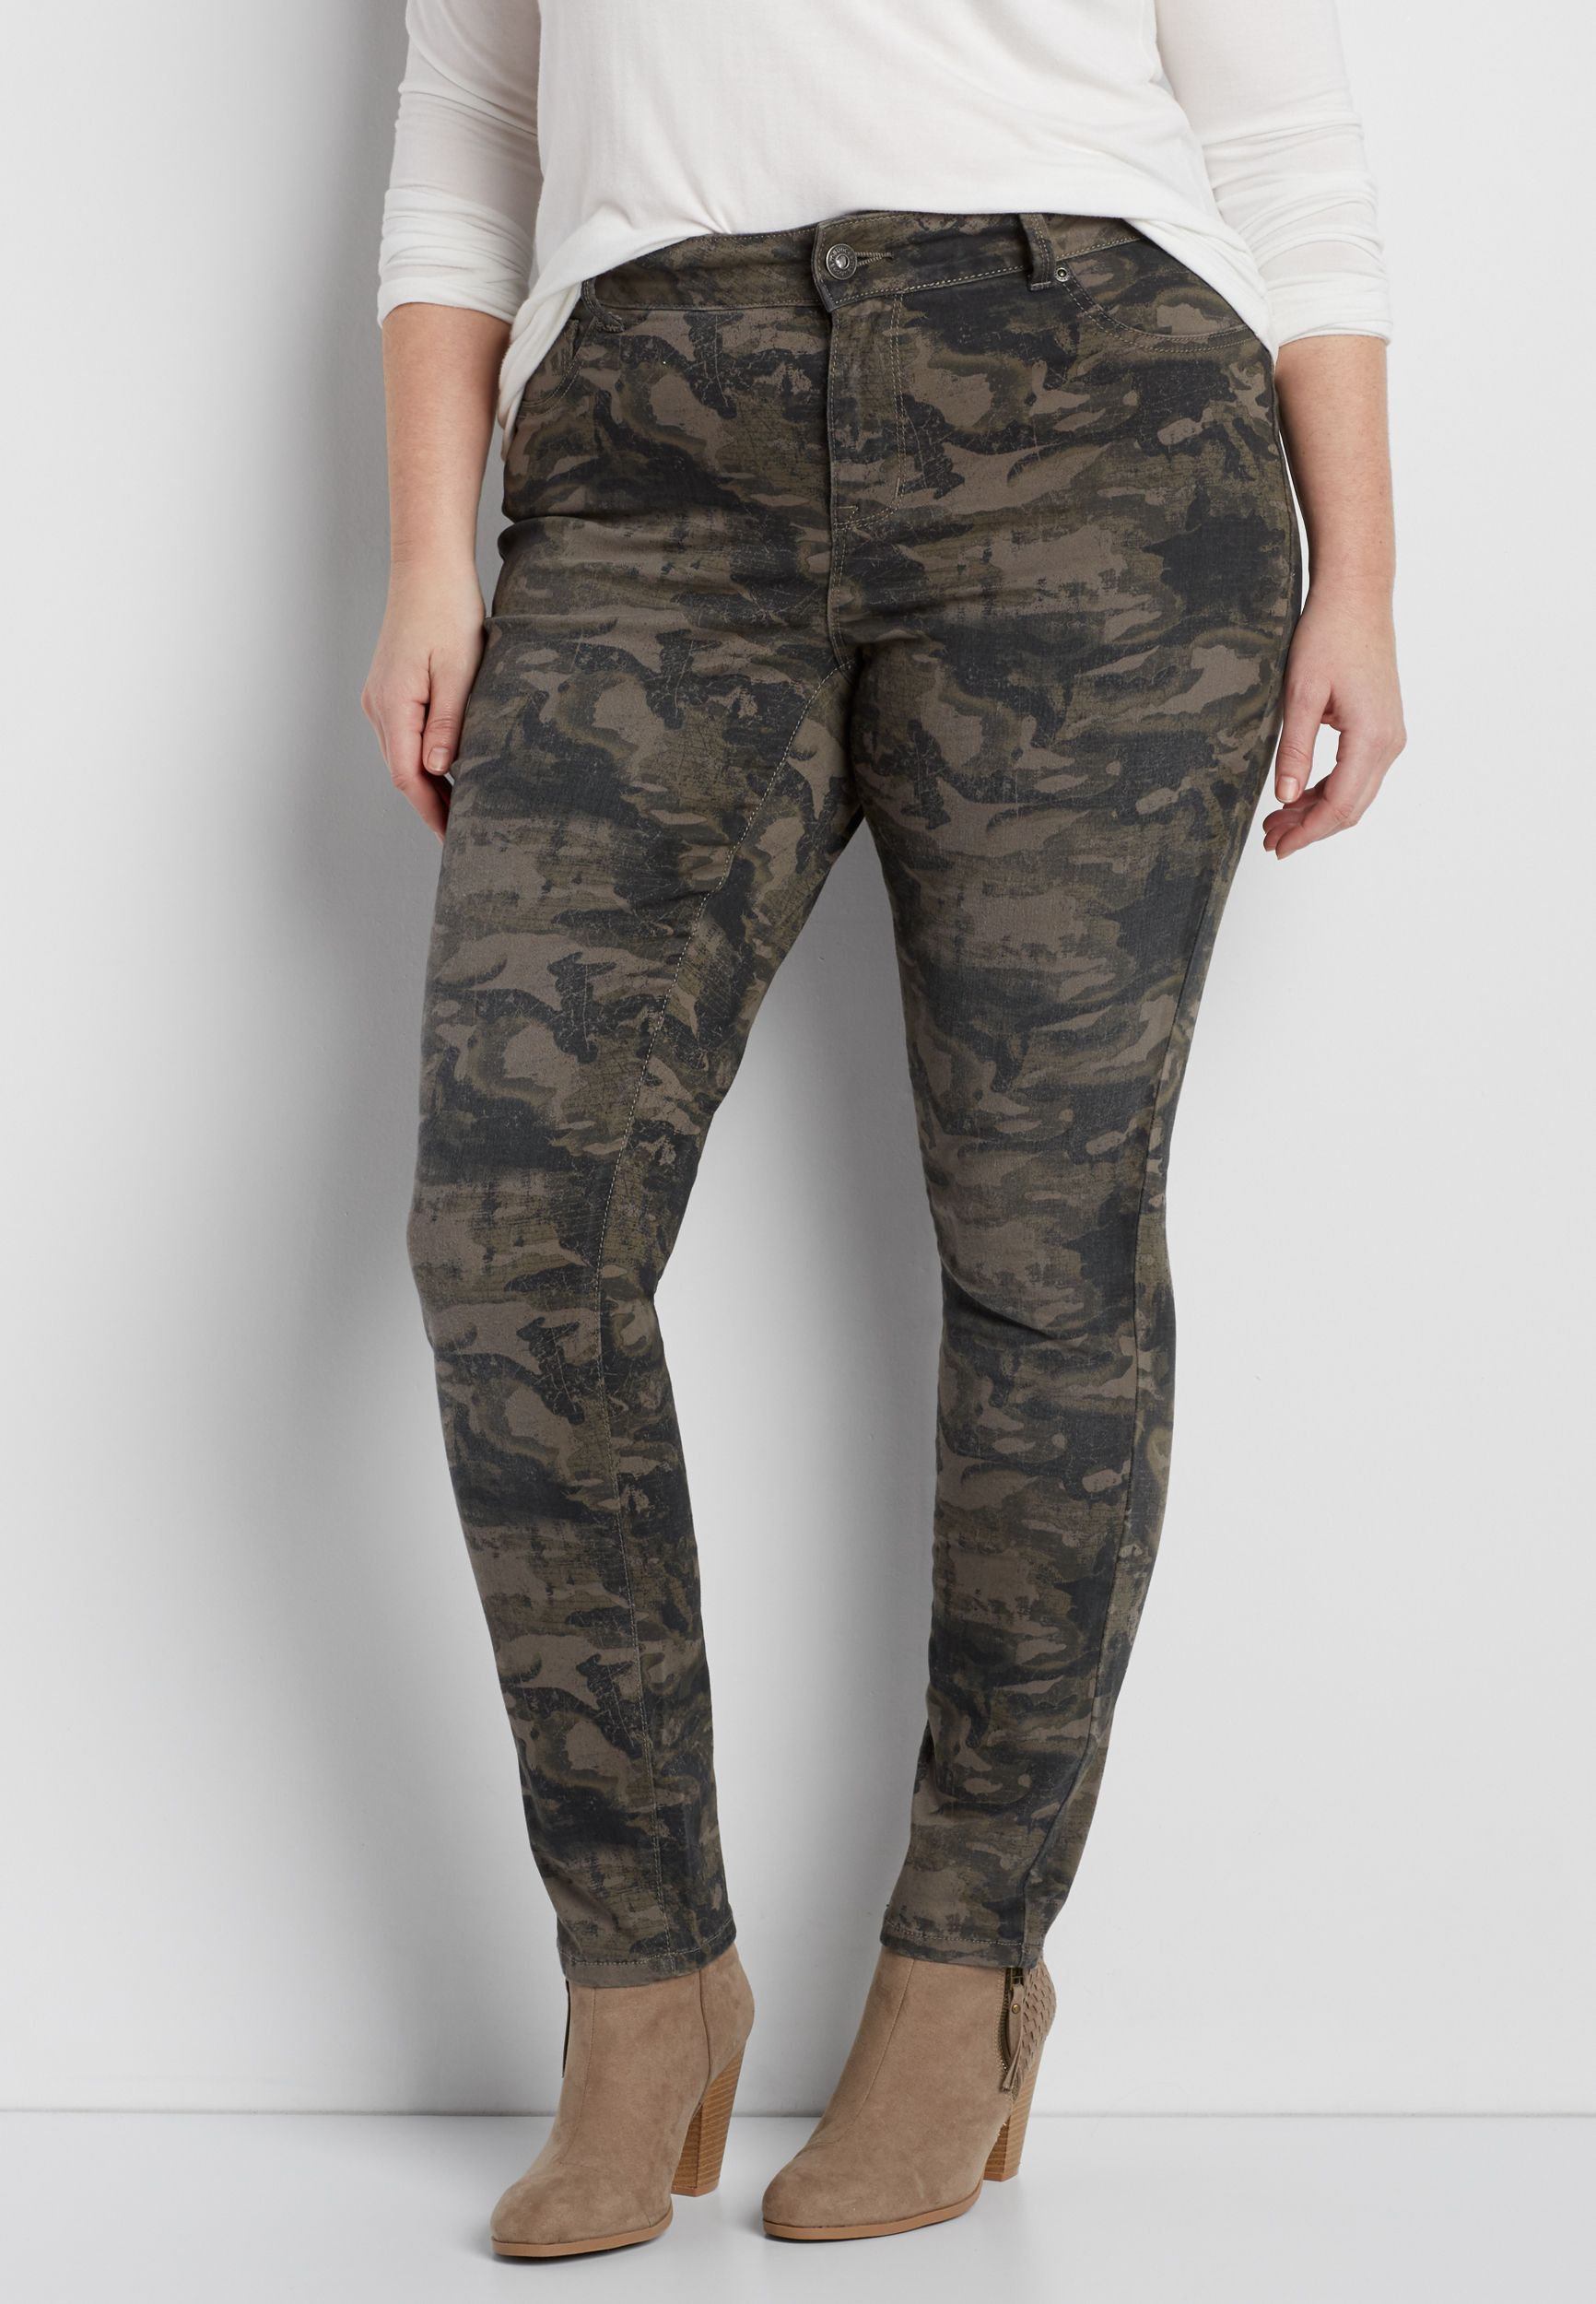 309e1fba203f7 DenimFlex™ plus size jegging in olive green camo print (original price,  $39.98) available at #Maurices